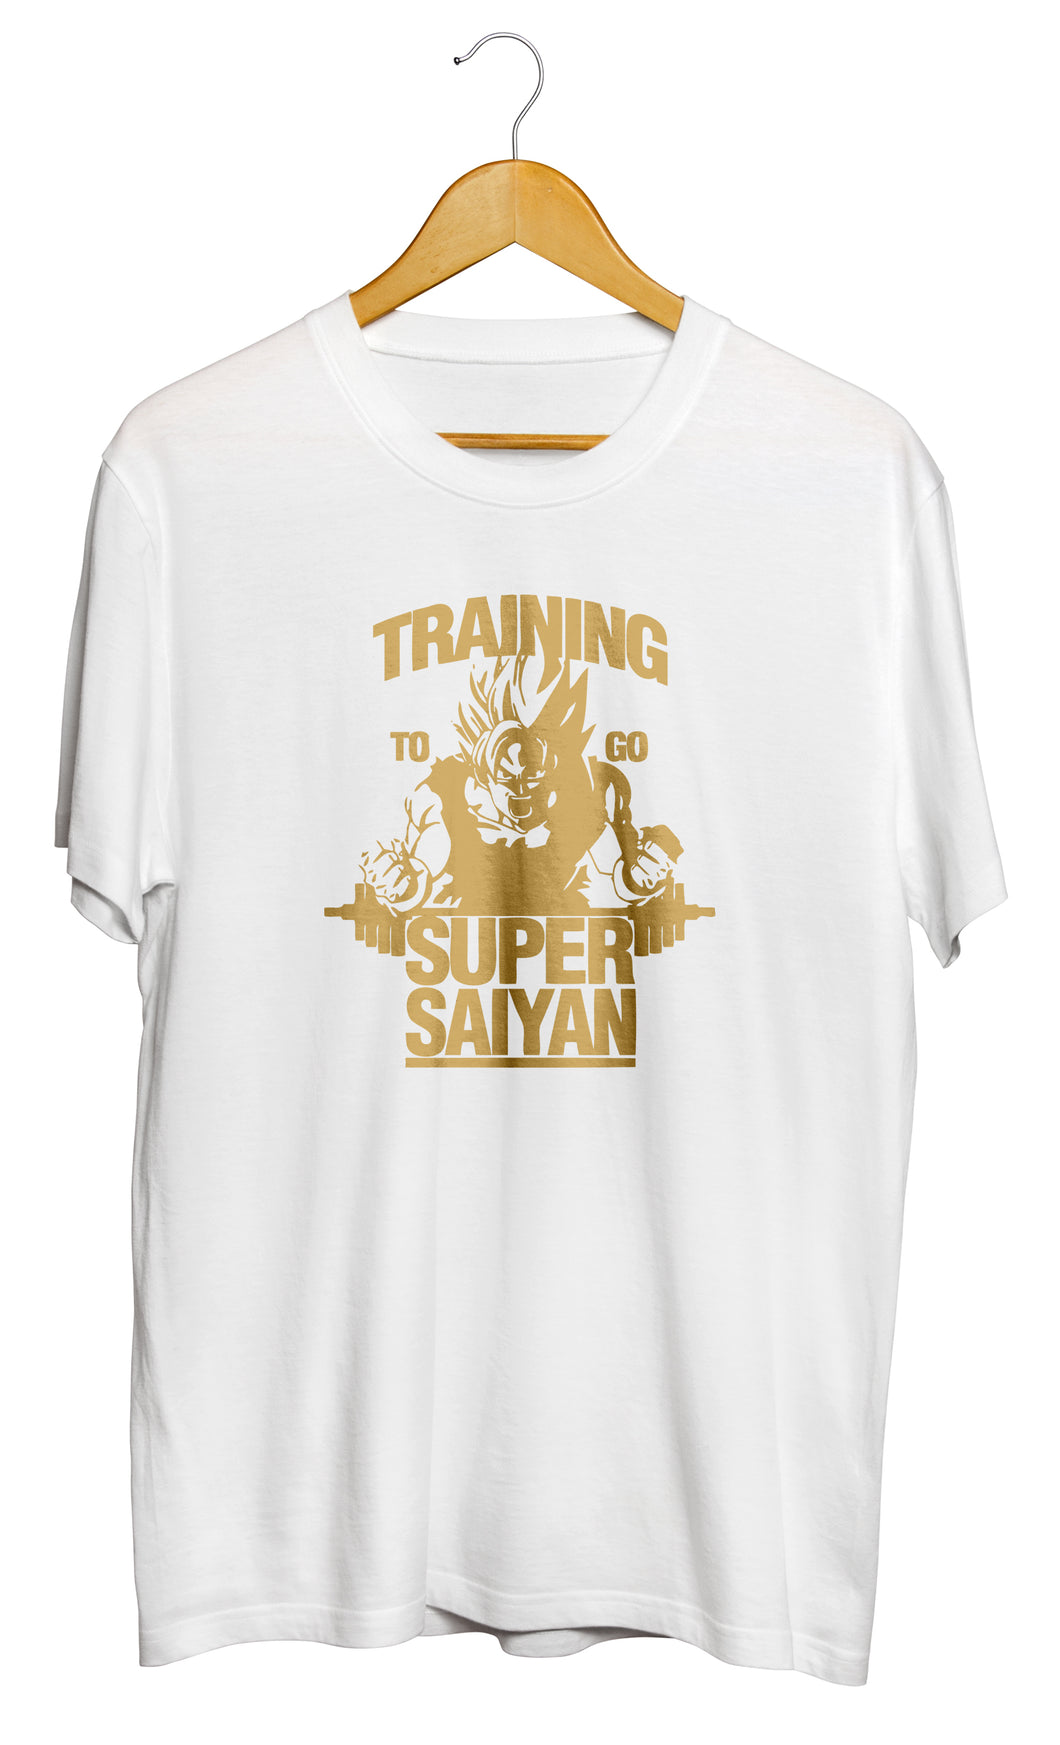 T-shirt DBZ Goku Super Saiyan dragon ball So custom